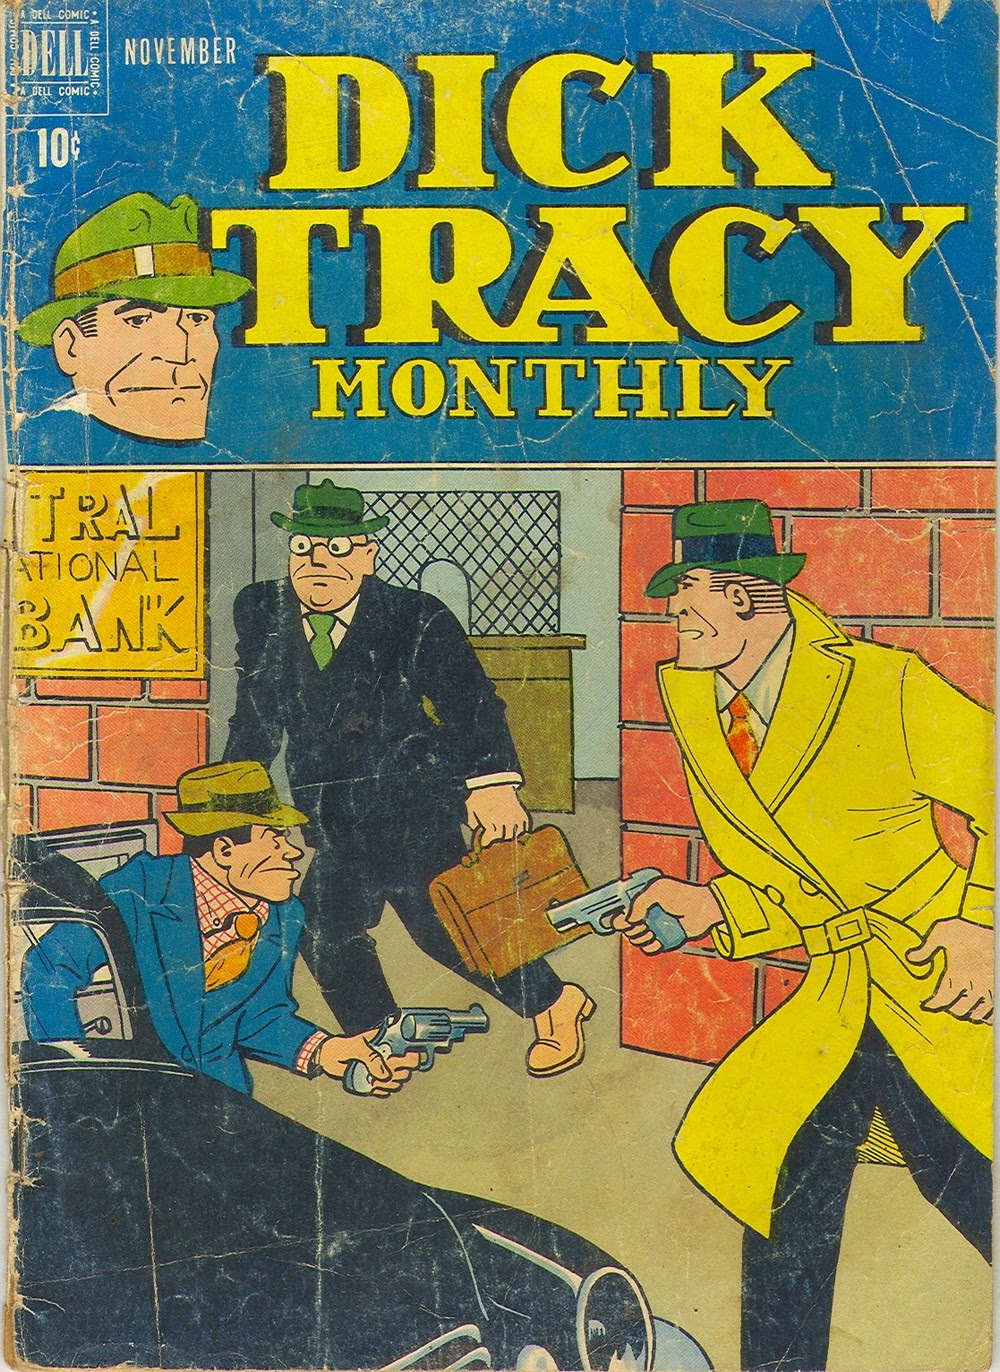 Dick Tracy Monthly 11 Page 1